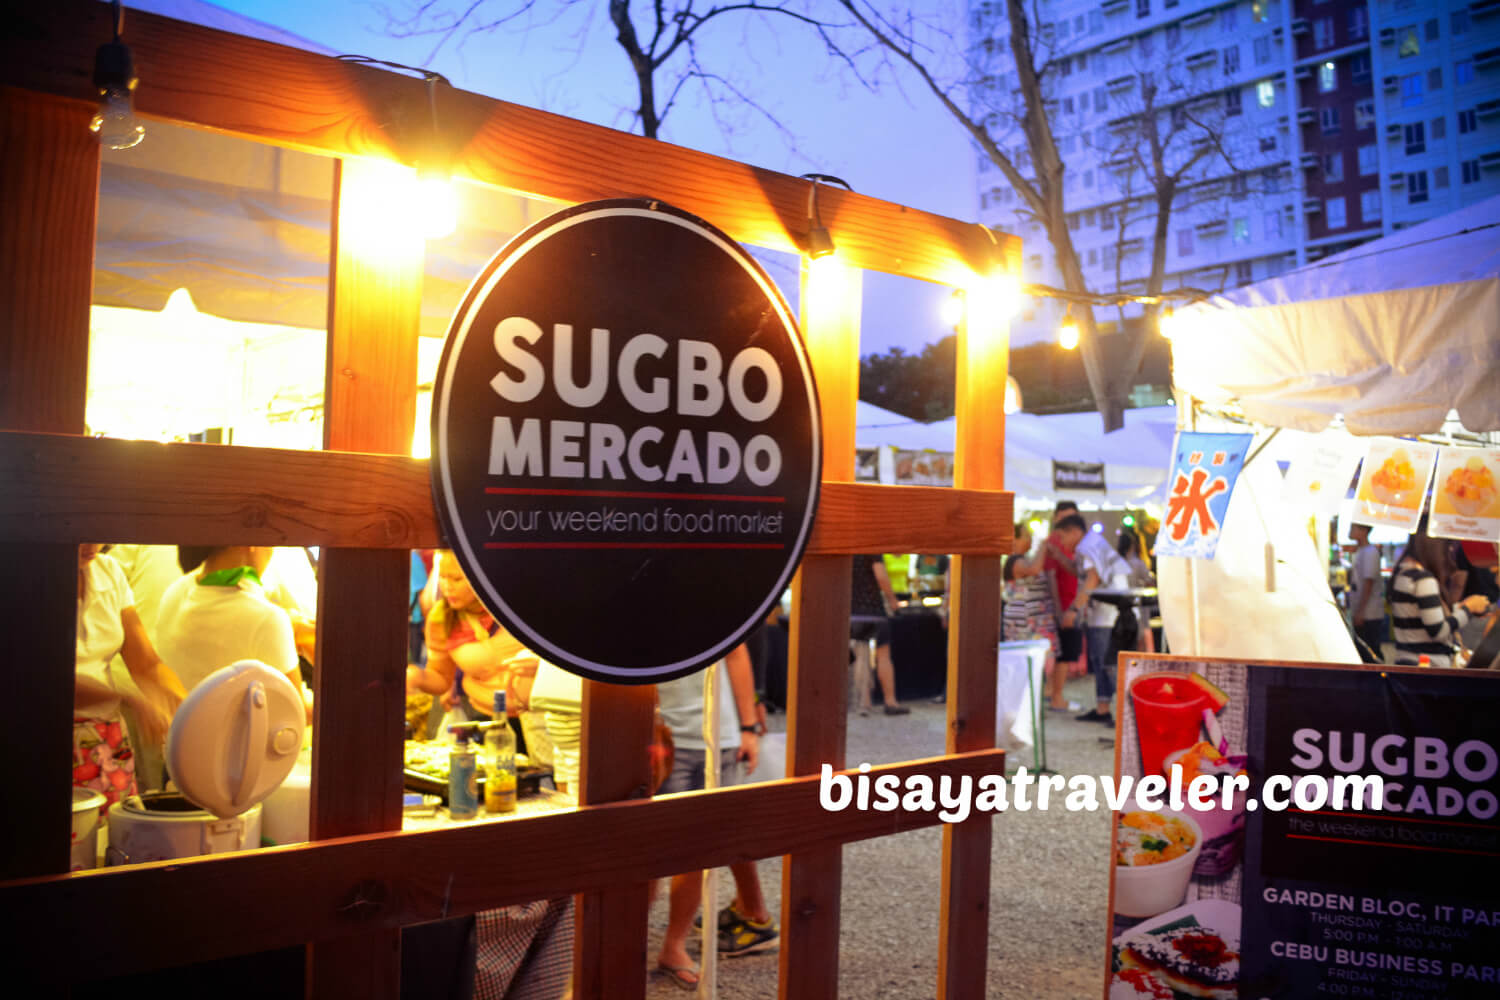 Sugbo Mercado: A Smorgasbord Of Tasty Culinary Goodness